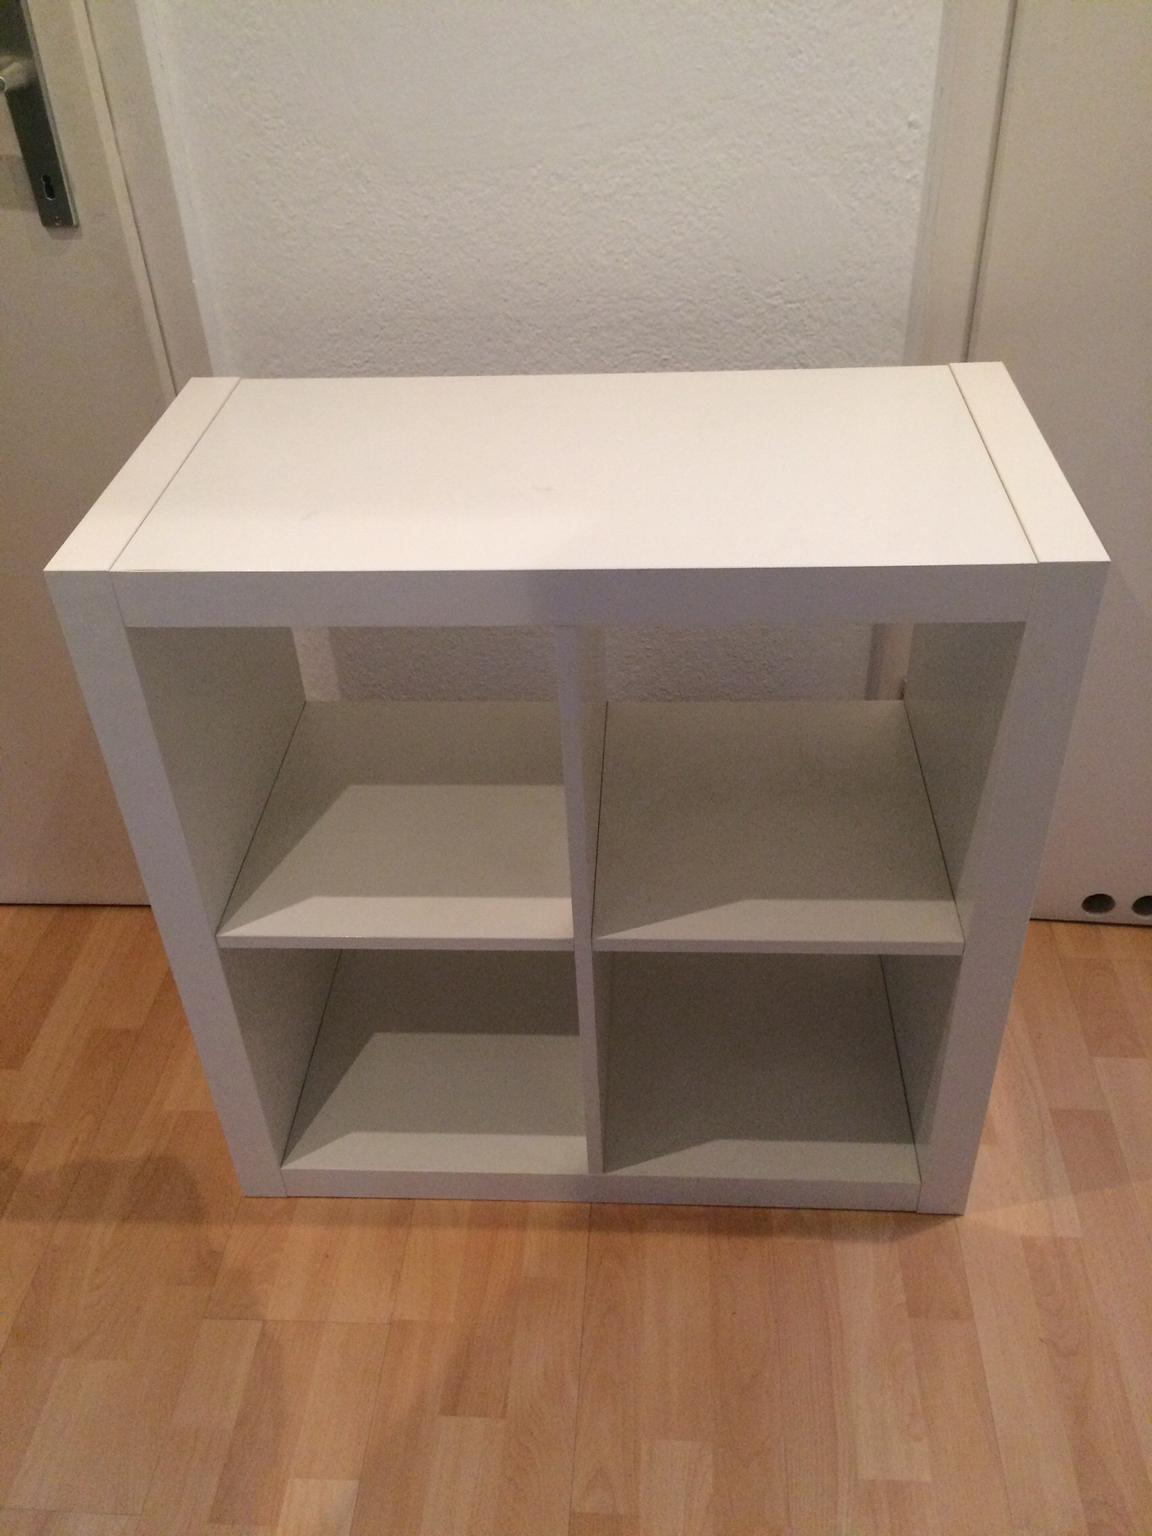 Expedit Regal 4 Fächer 2x2 Weiß Ikea Kallax In 8010 Graz - Regal Quadratische Fächer